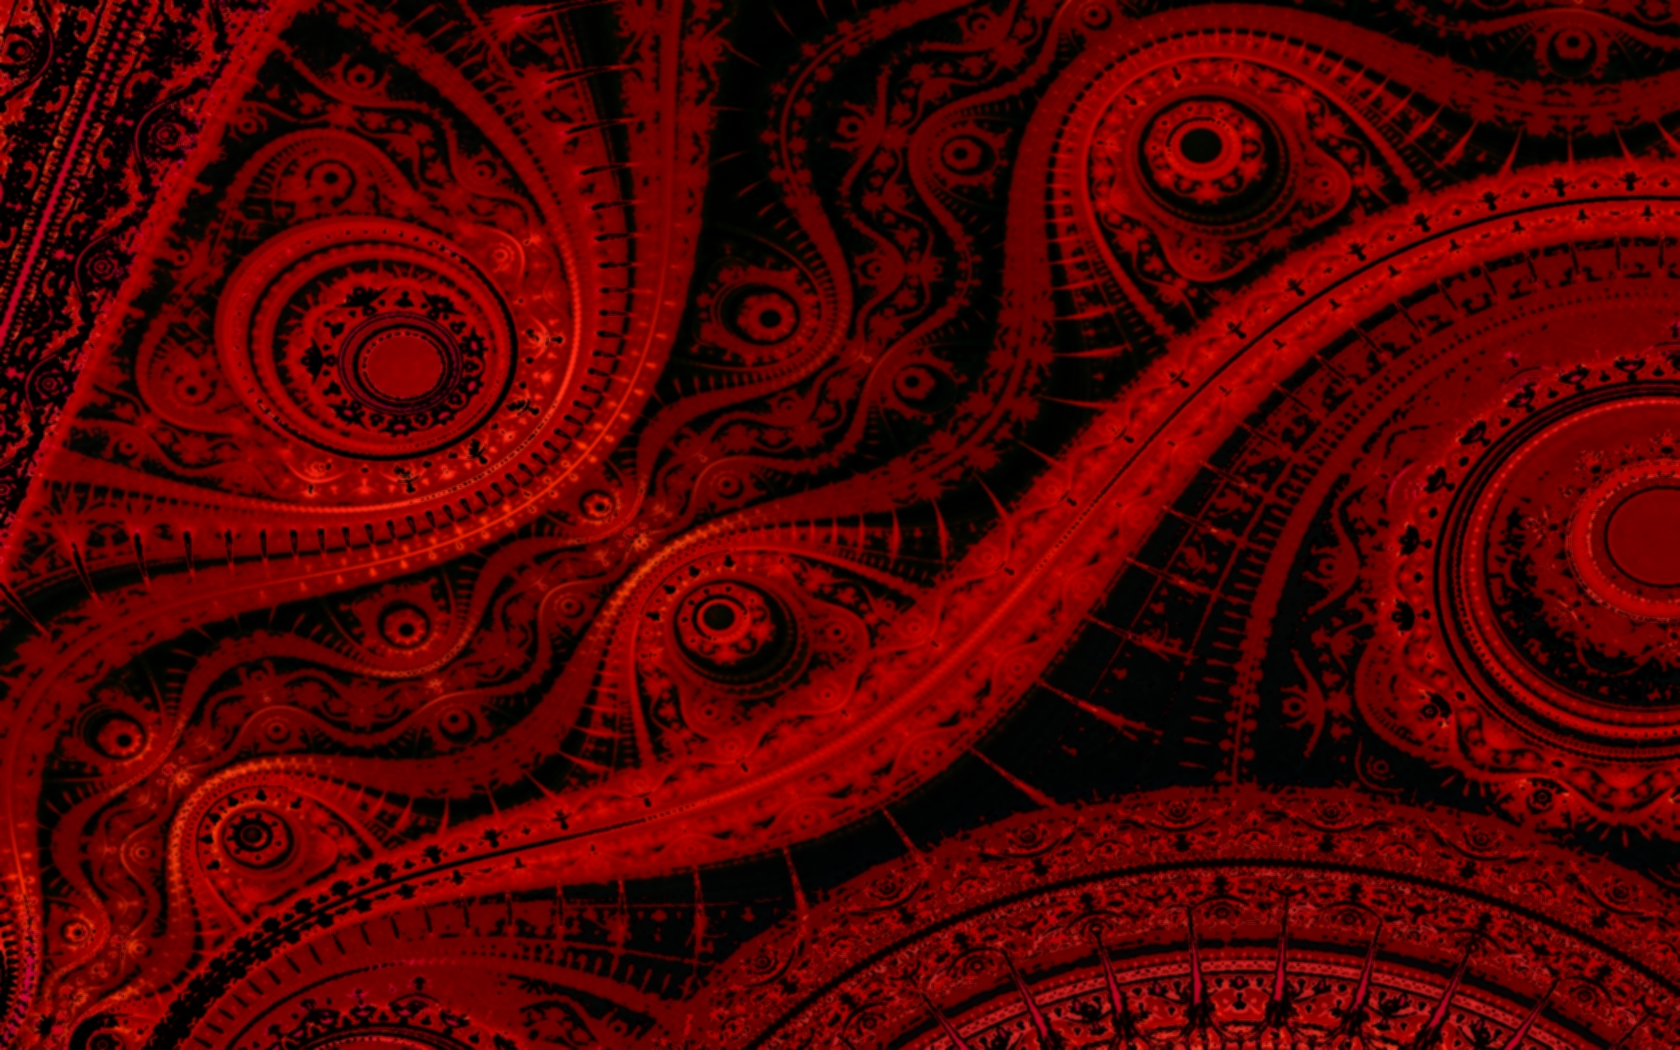 red and black abstract backgrounds MEMEs